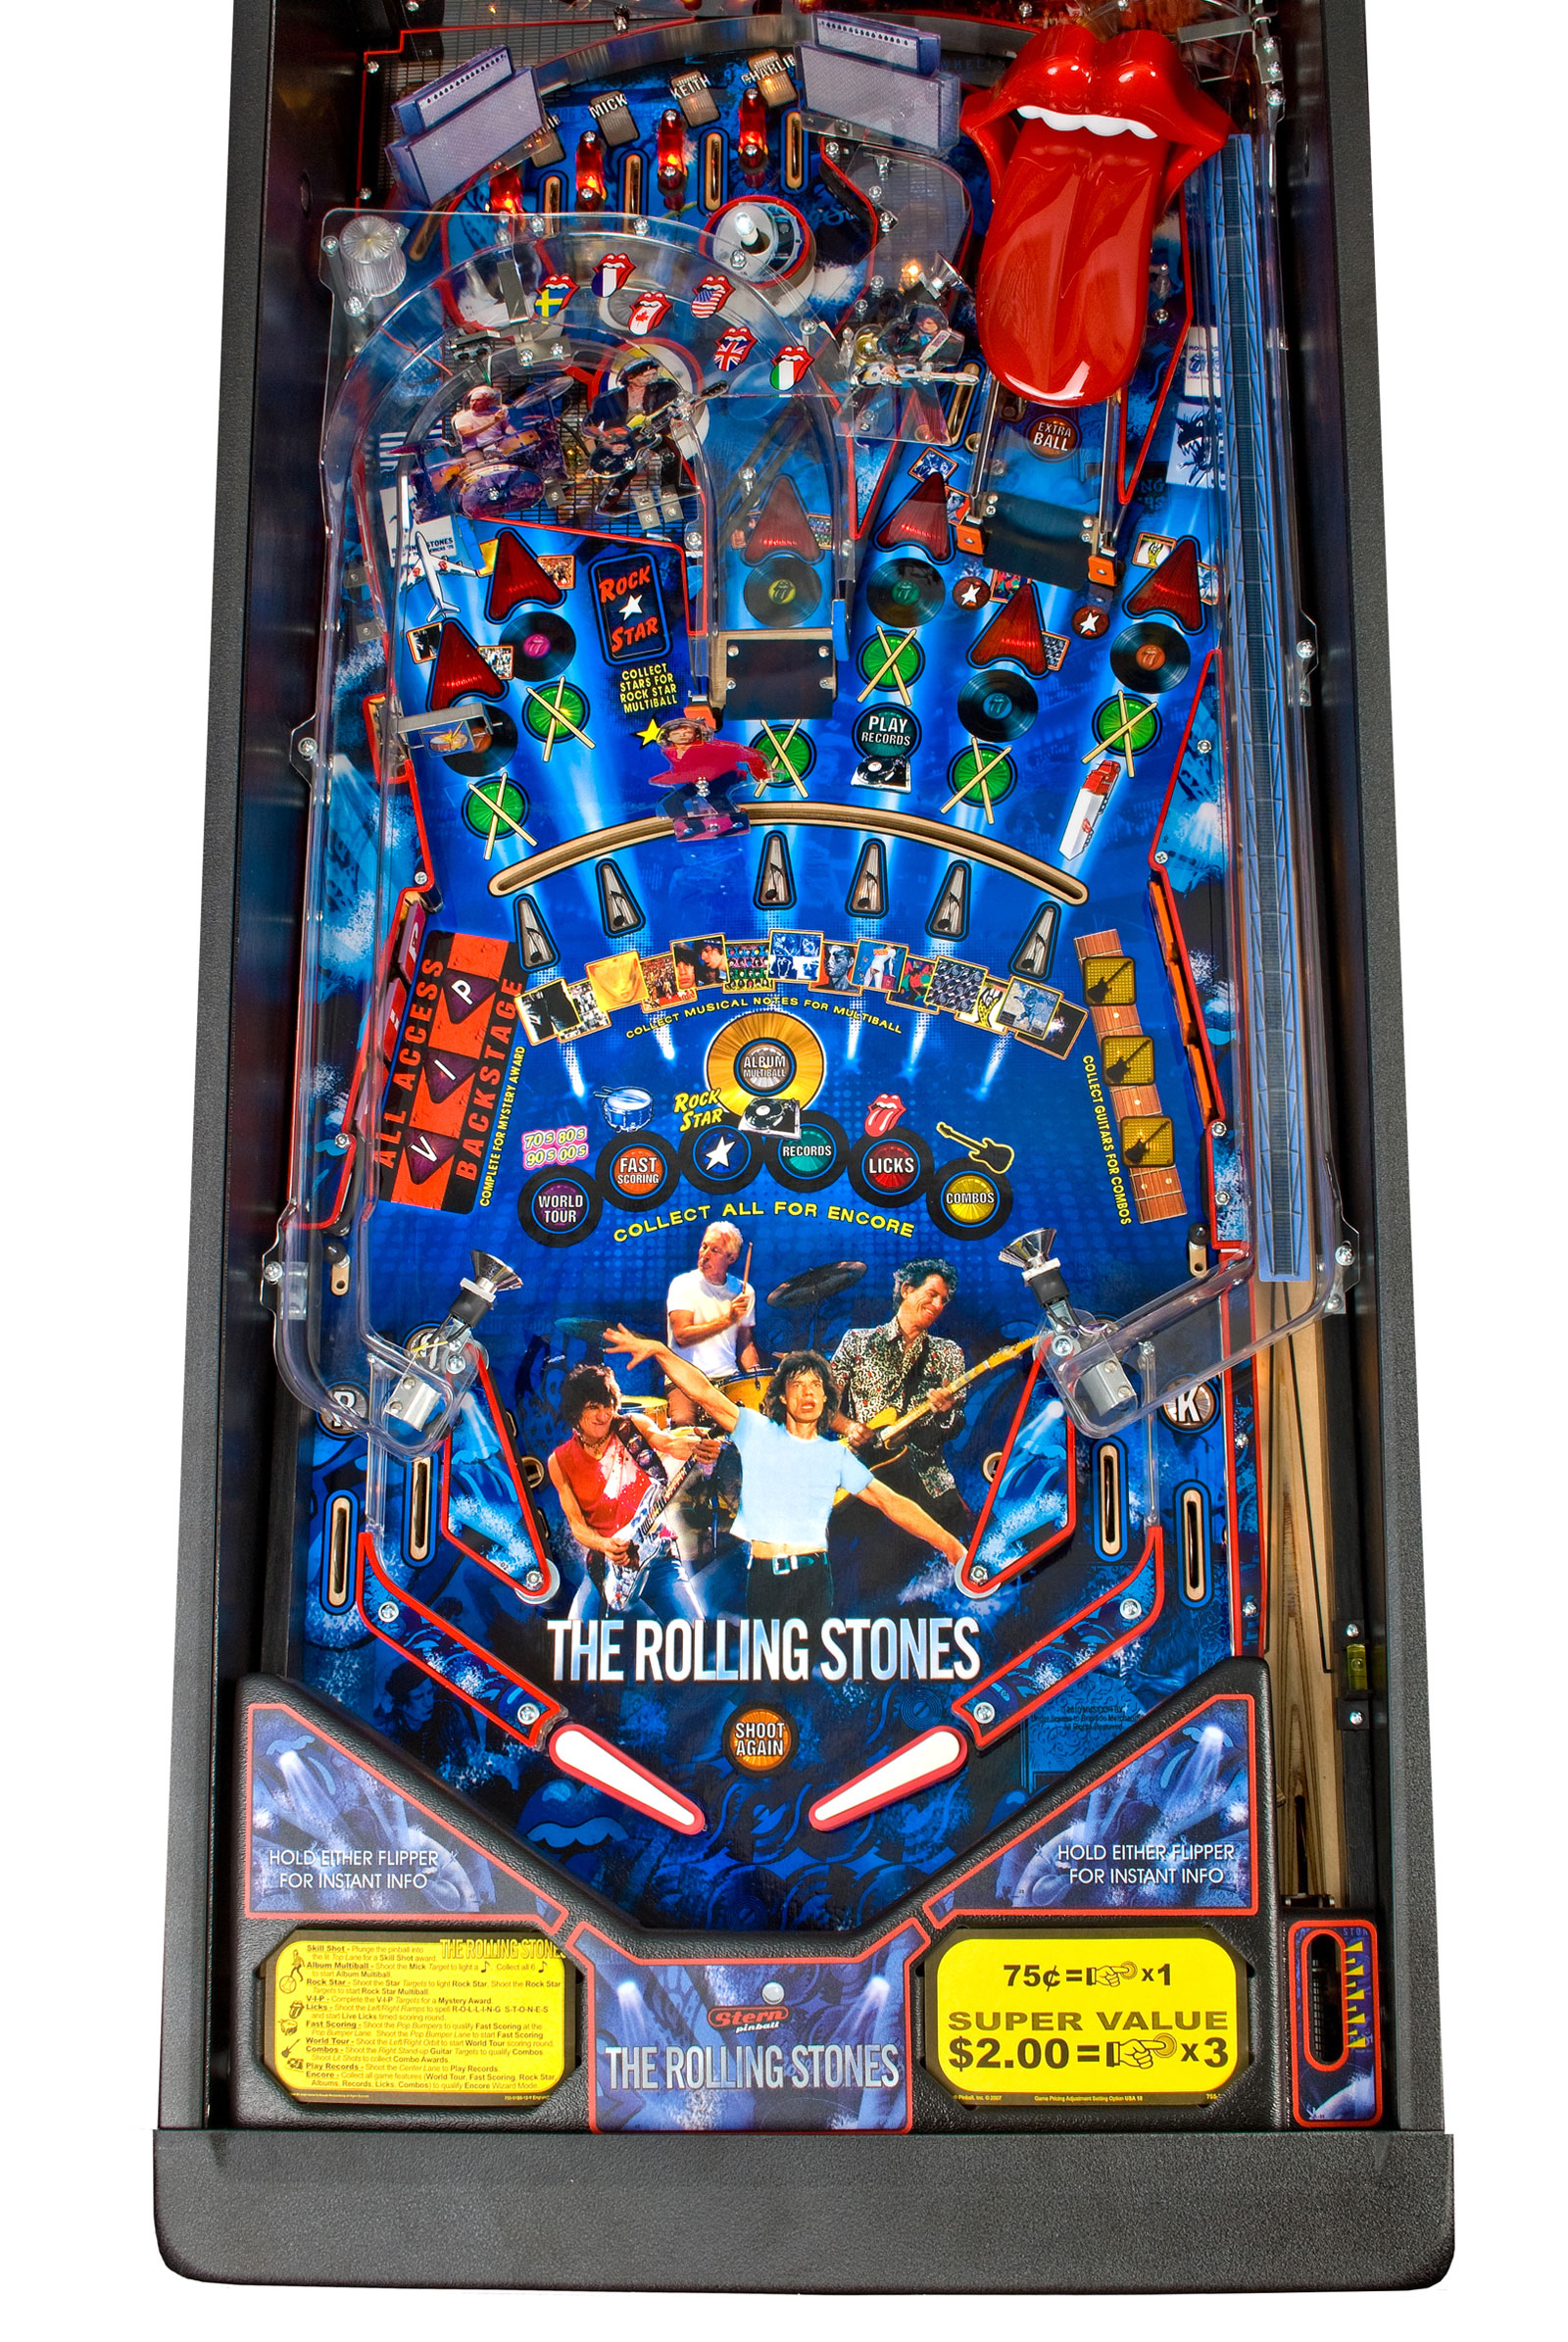 The Rolling Stones Pinball Machine